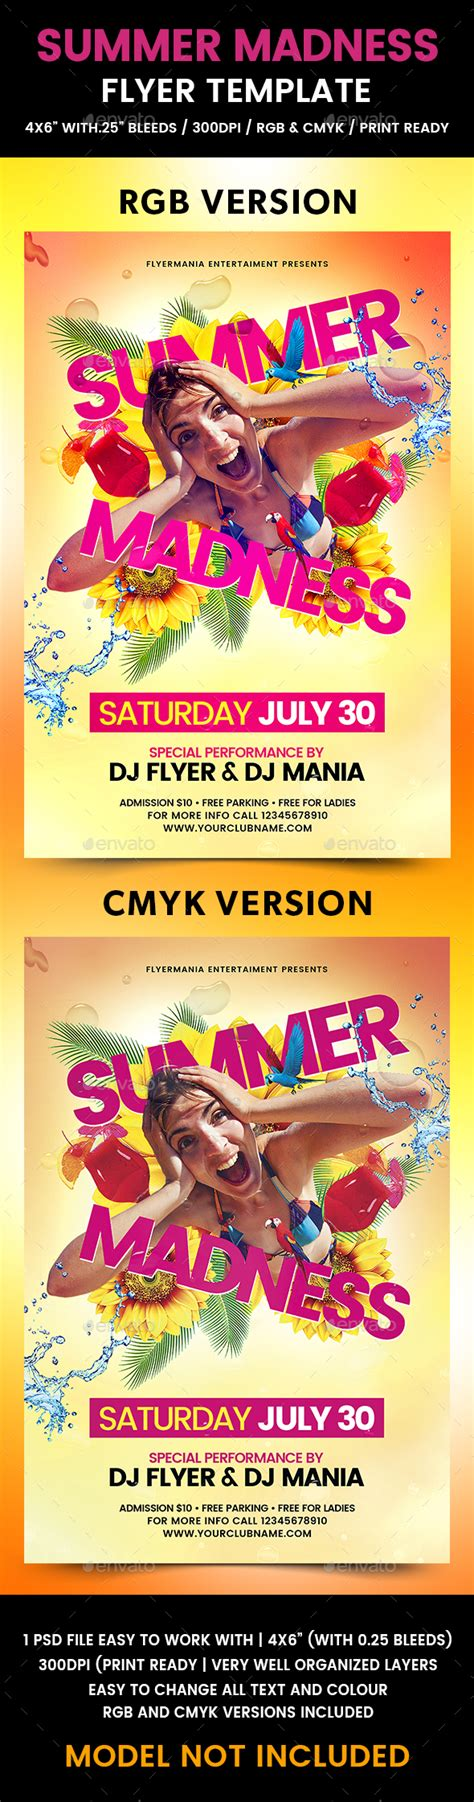 Summer Madness Flyer Template By Flyermania Graphicriver Madness Flyer Template